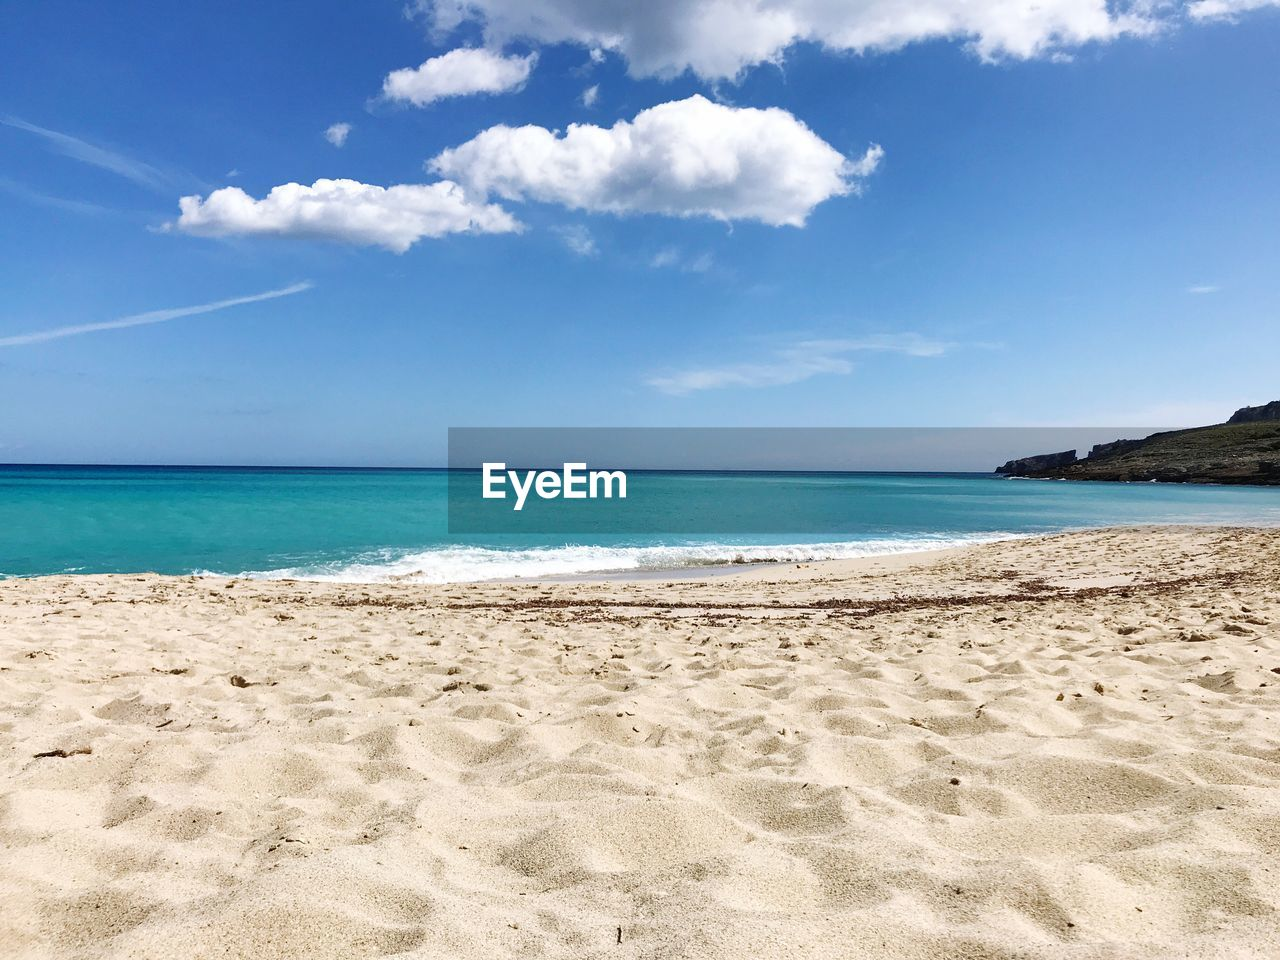 beach, land, sea, sky, water, sand, scenics - nature, beauty in nature, tranquility, cloud - sky, tranquil scene, horizon over water, nature, day, horizon, no people, idyllic, non-urban scene, blue, outdoors, turquoise colored